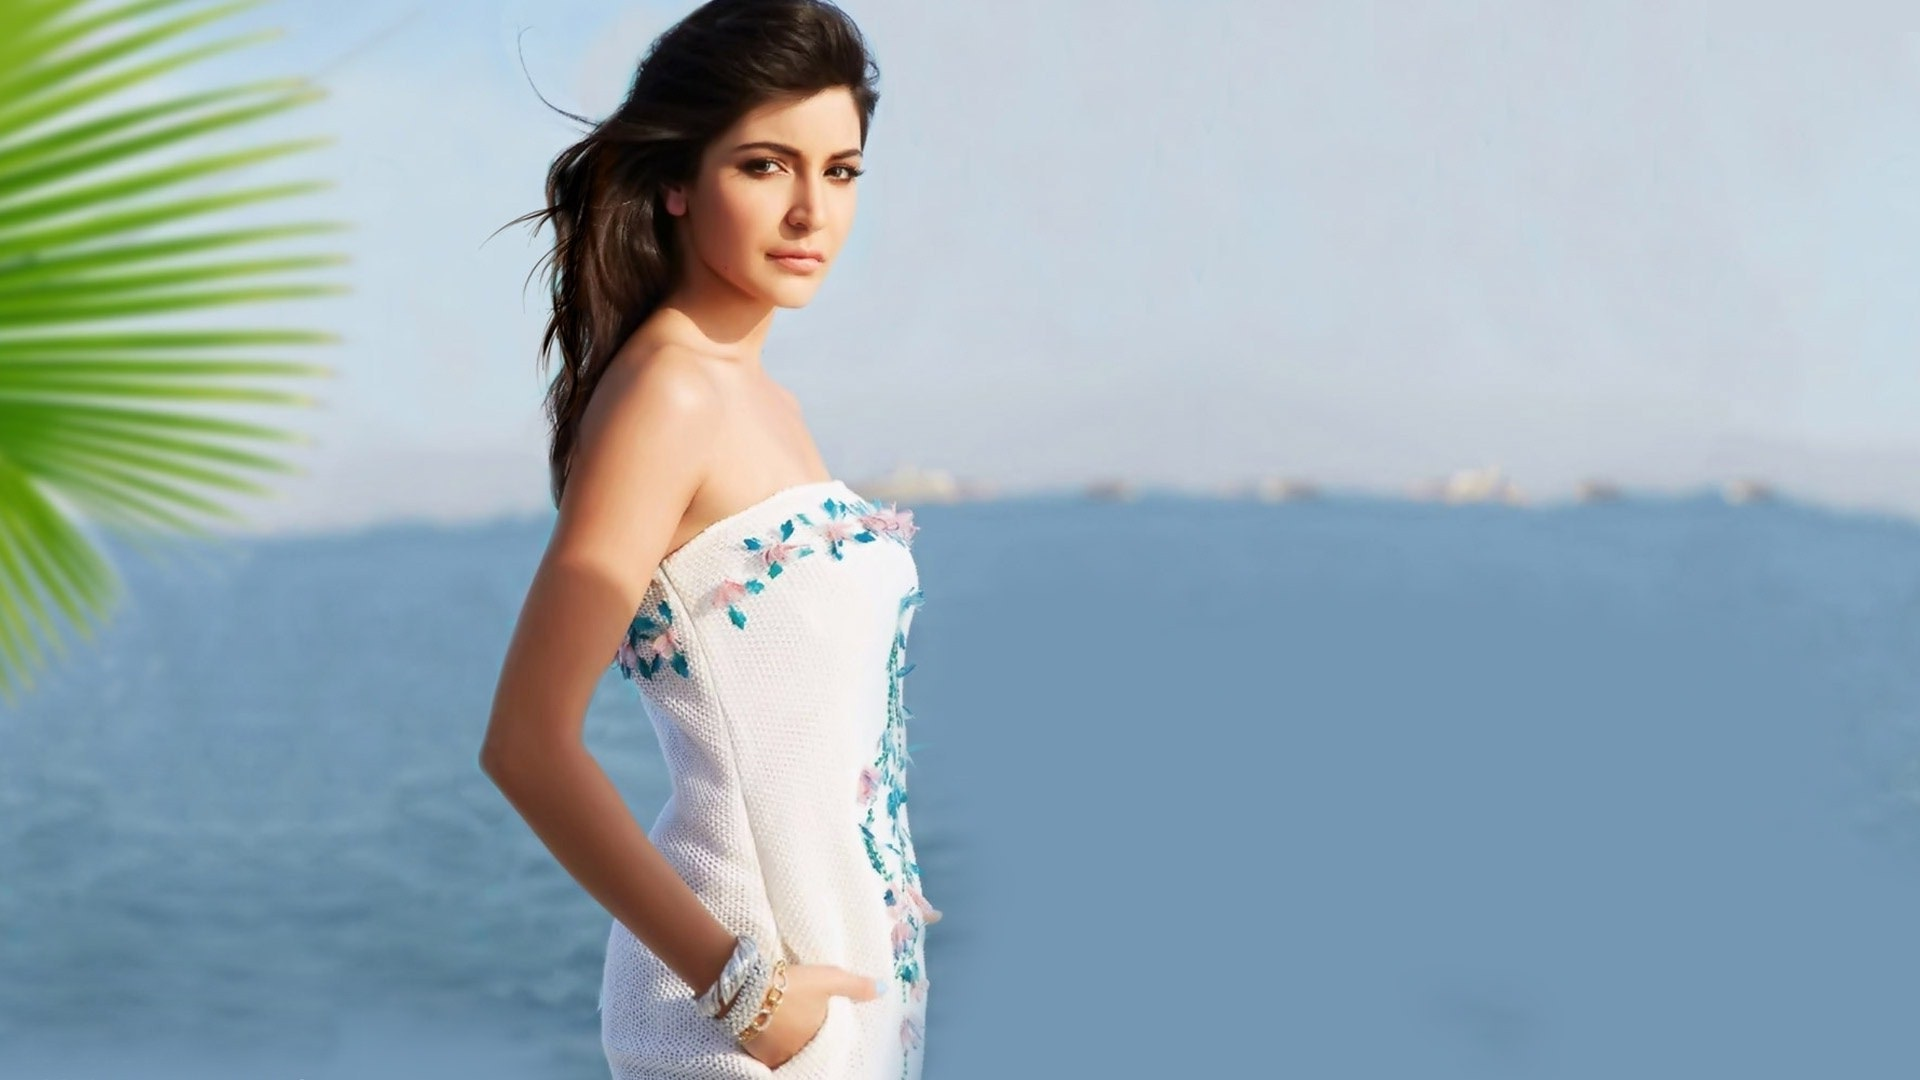 Anushka-Sharma-Full-HD-1080p-Wallpapers-Images-Photos-Pics